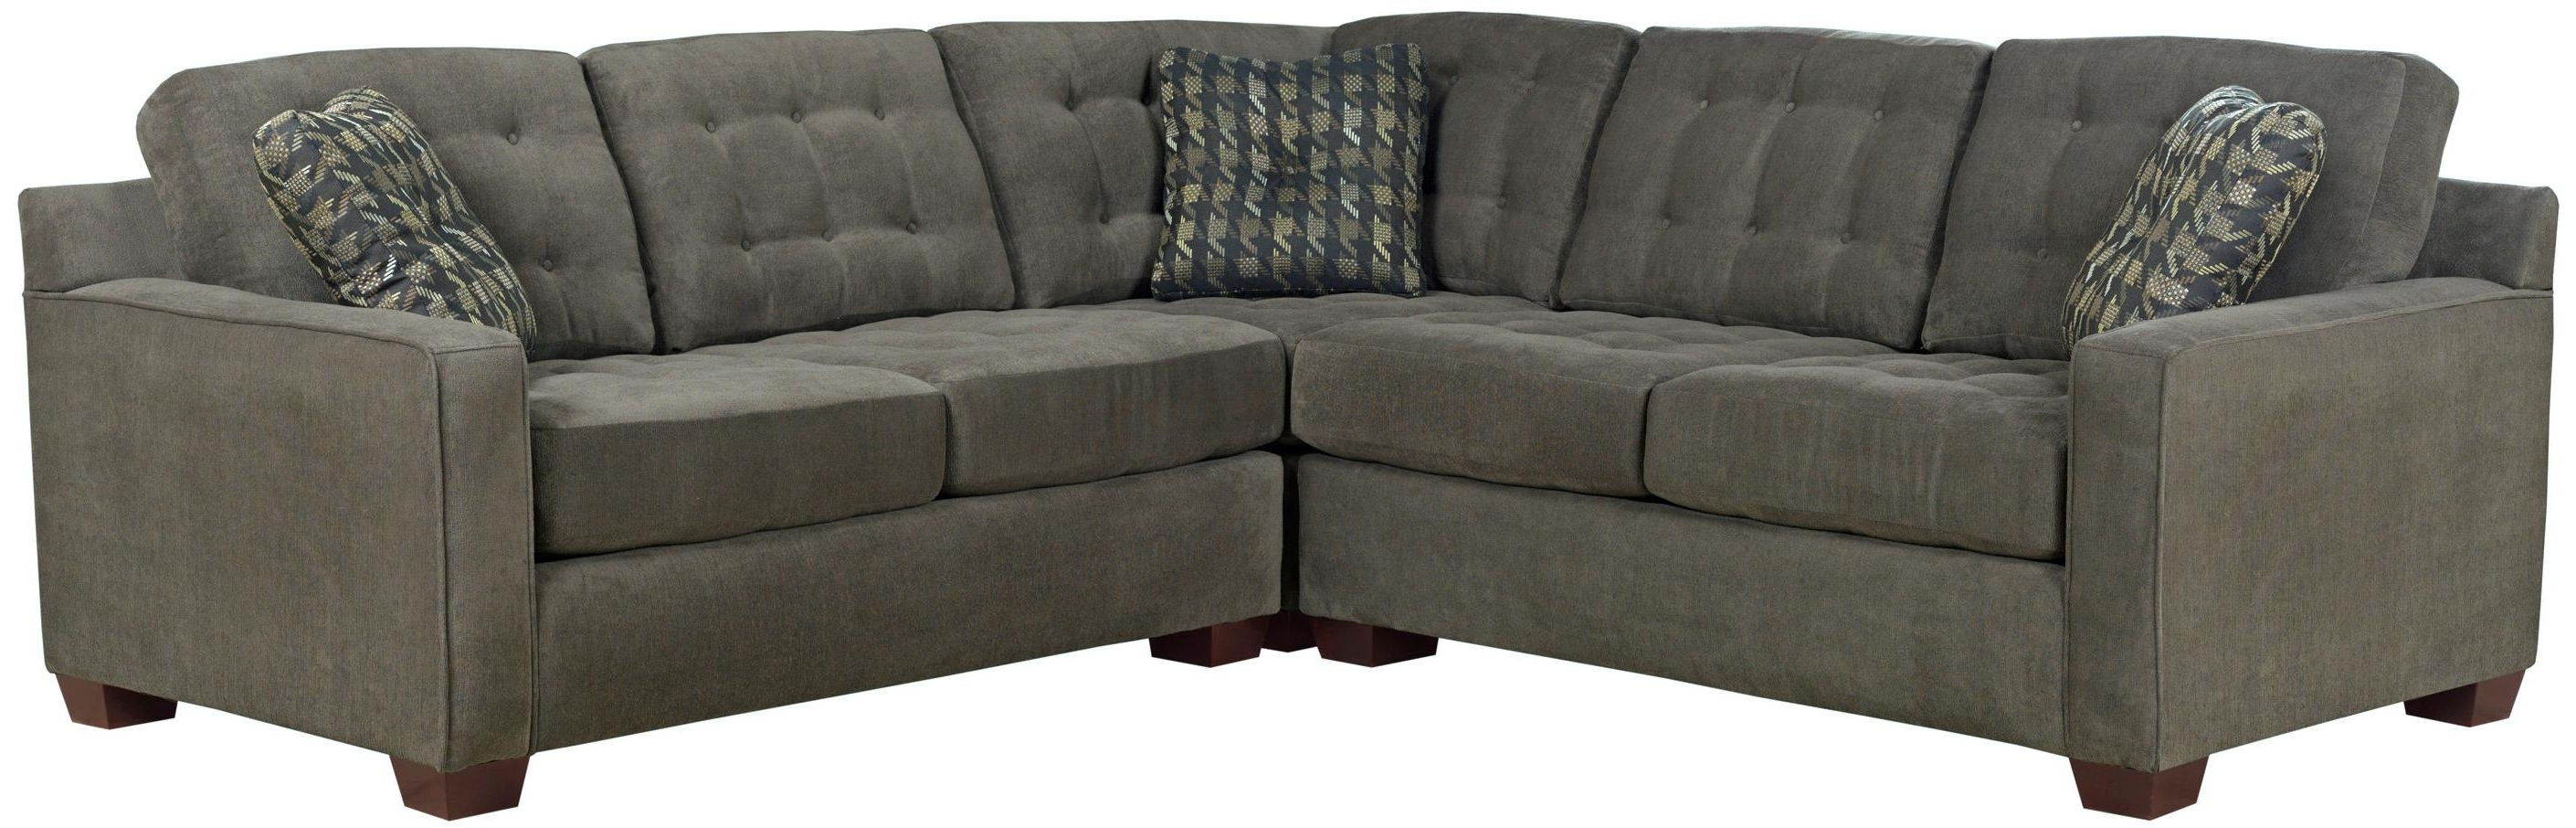 Recent Broyhill Furniture Tribeca Contemporary L Shaped Sectional Sofa Inside Broyhill Sectional Sofas (View 15 of 20)